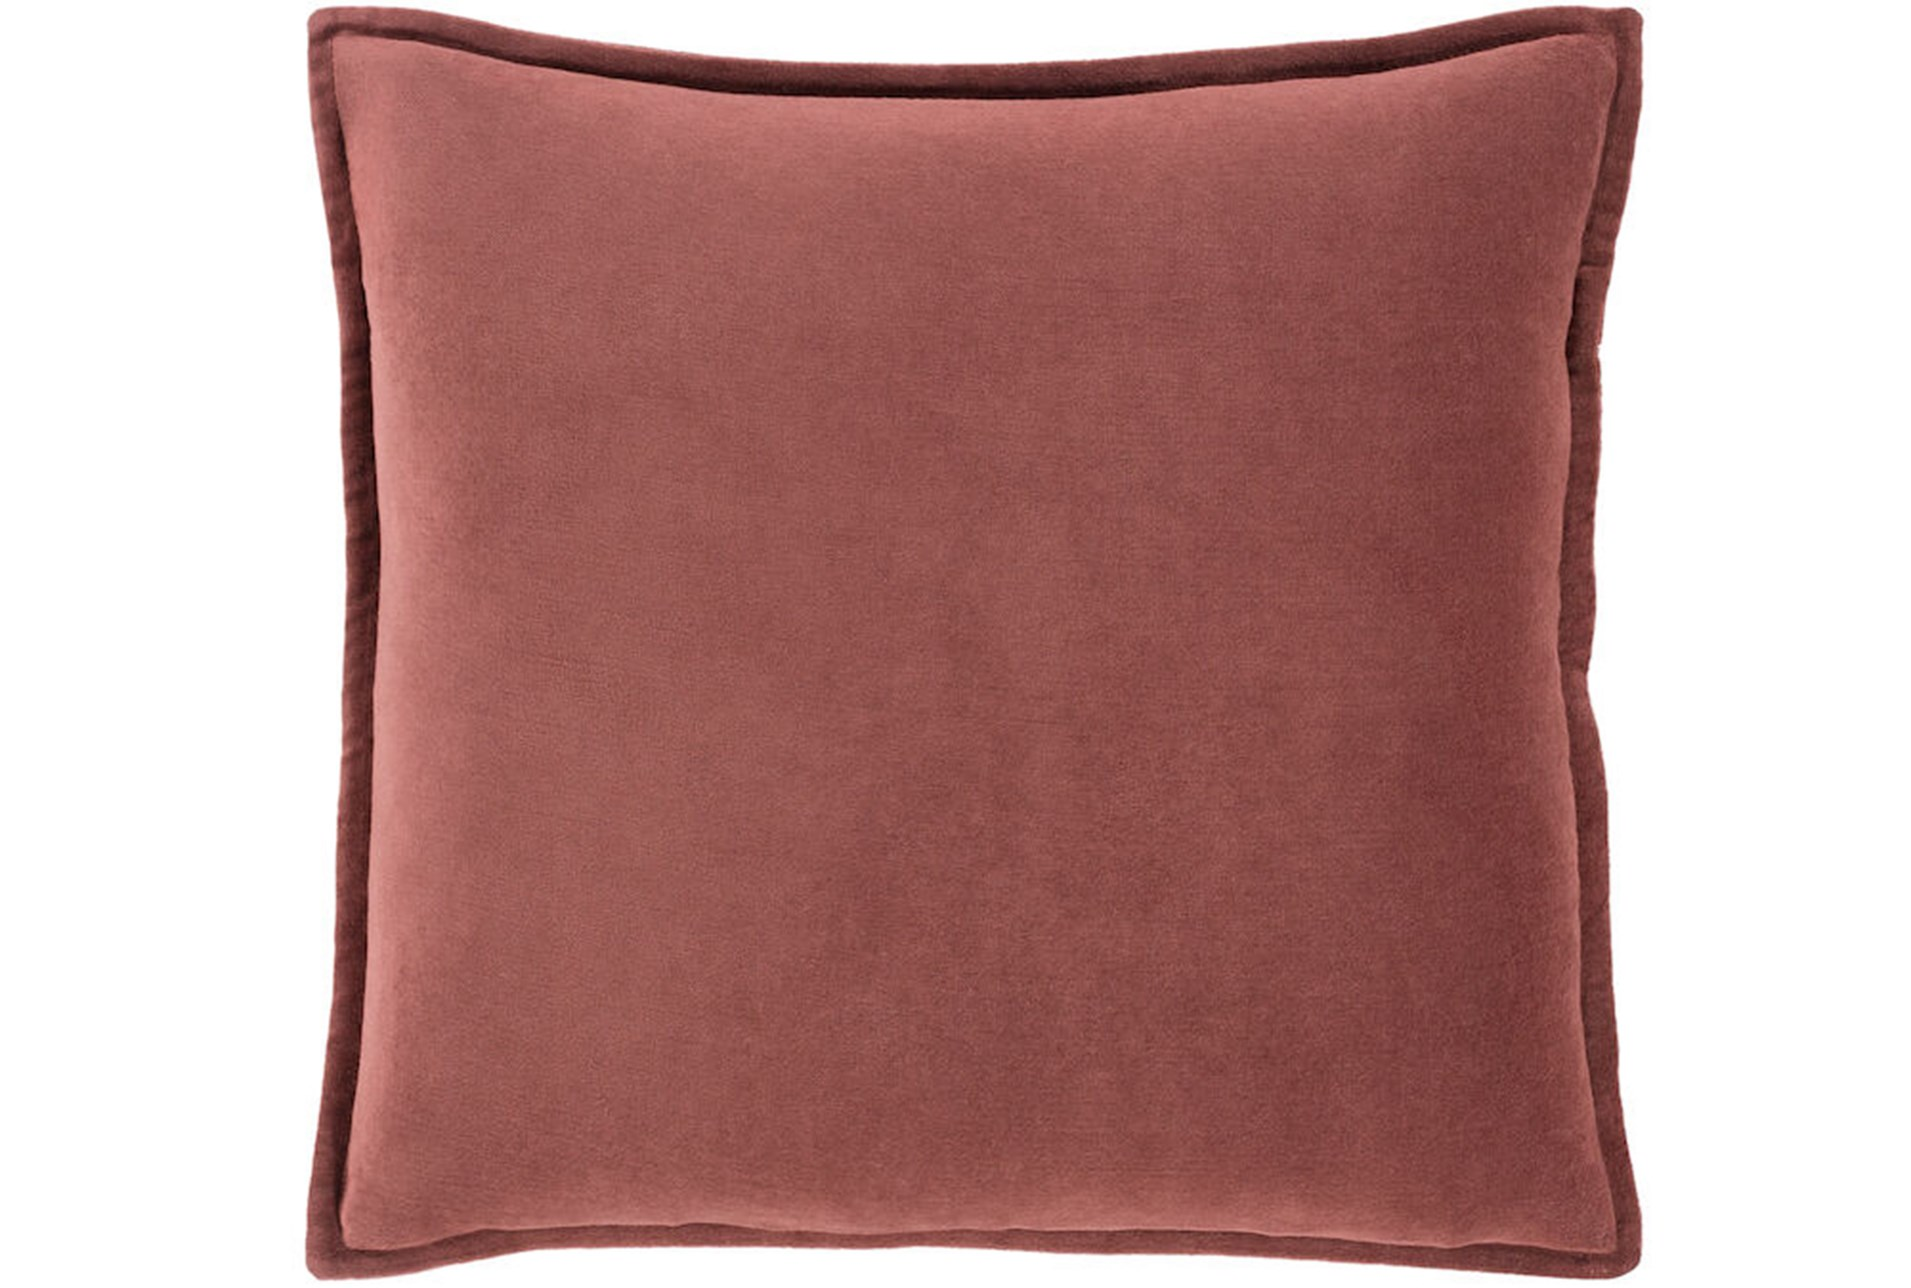 Wine Red Velvet Flanged Throw Pillow Cushion Covers 18x18 Set of 2